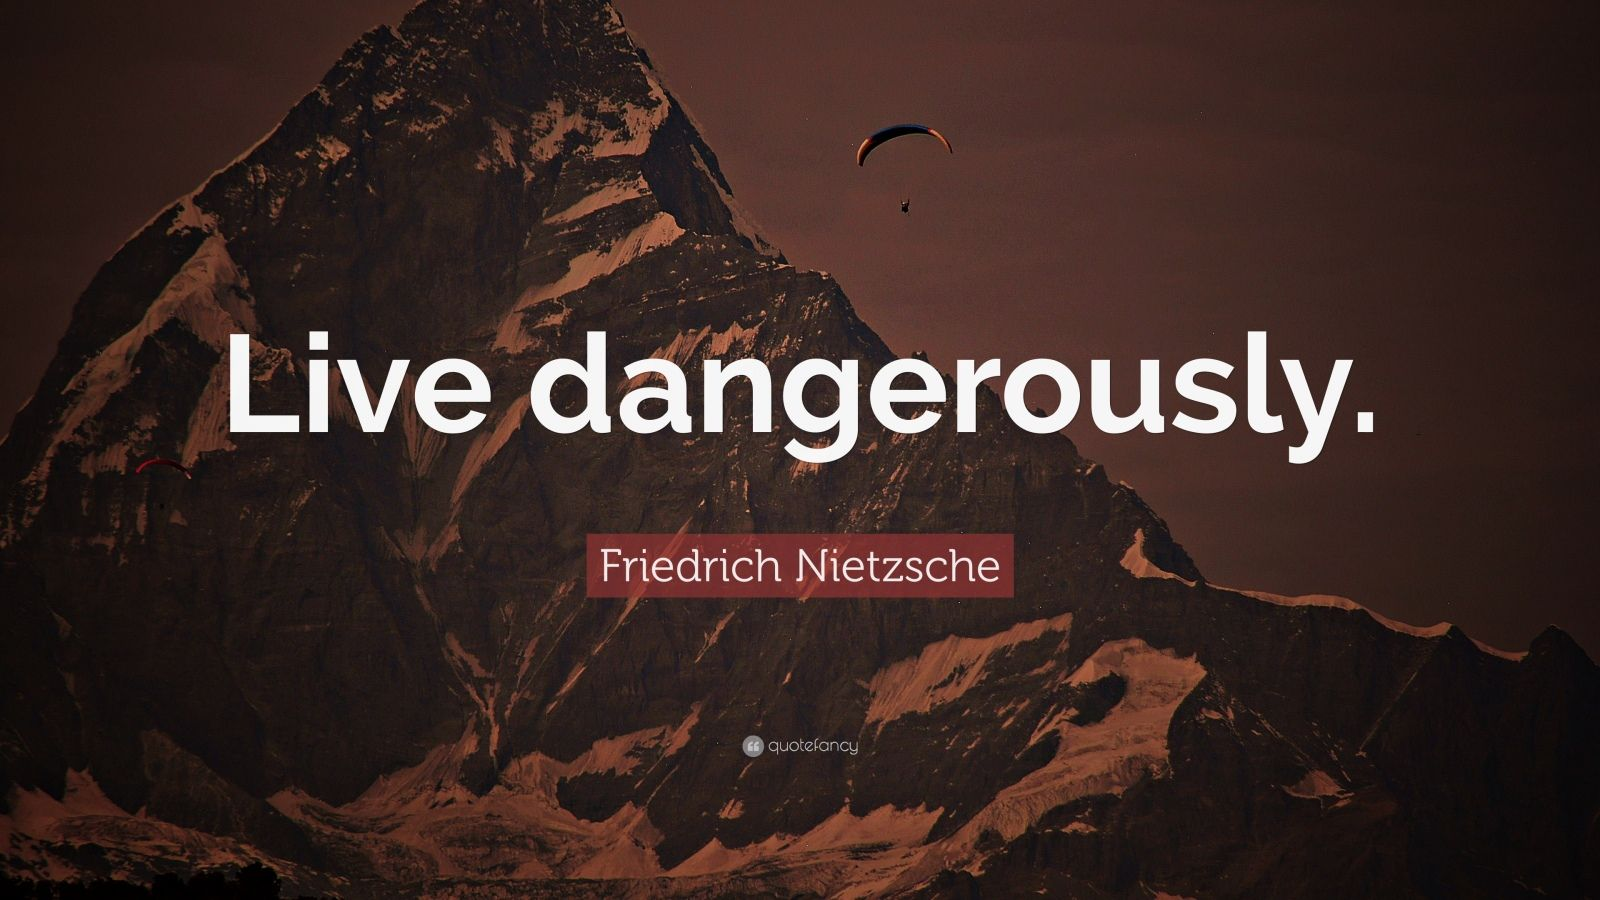 Hurting Love Quotes Wallpapers Friedrich Nietzsche Quote Live Dangerously 22